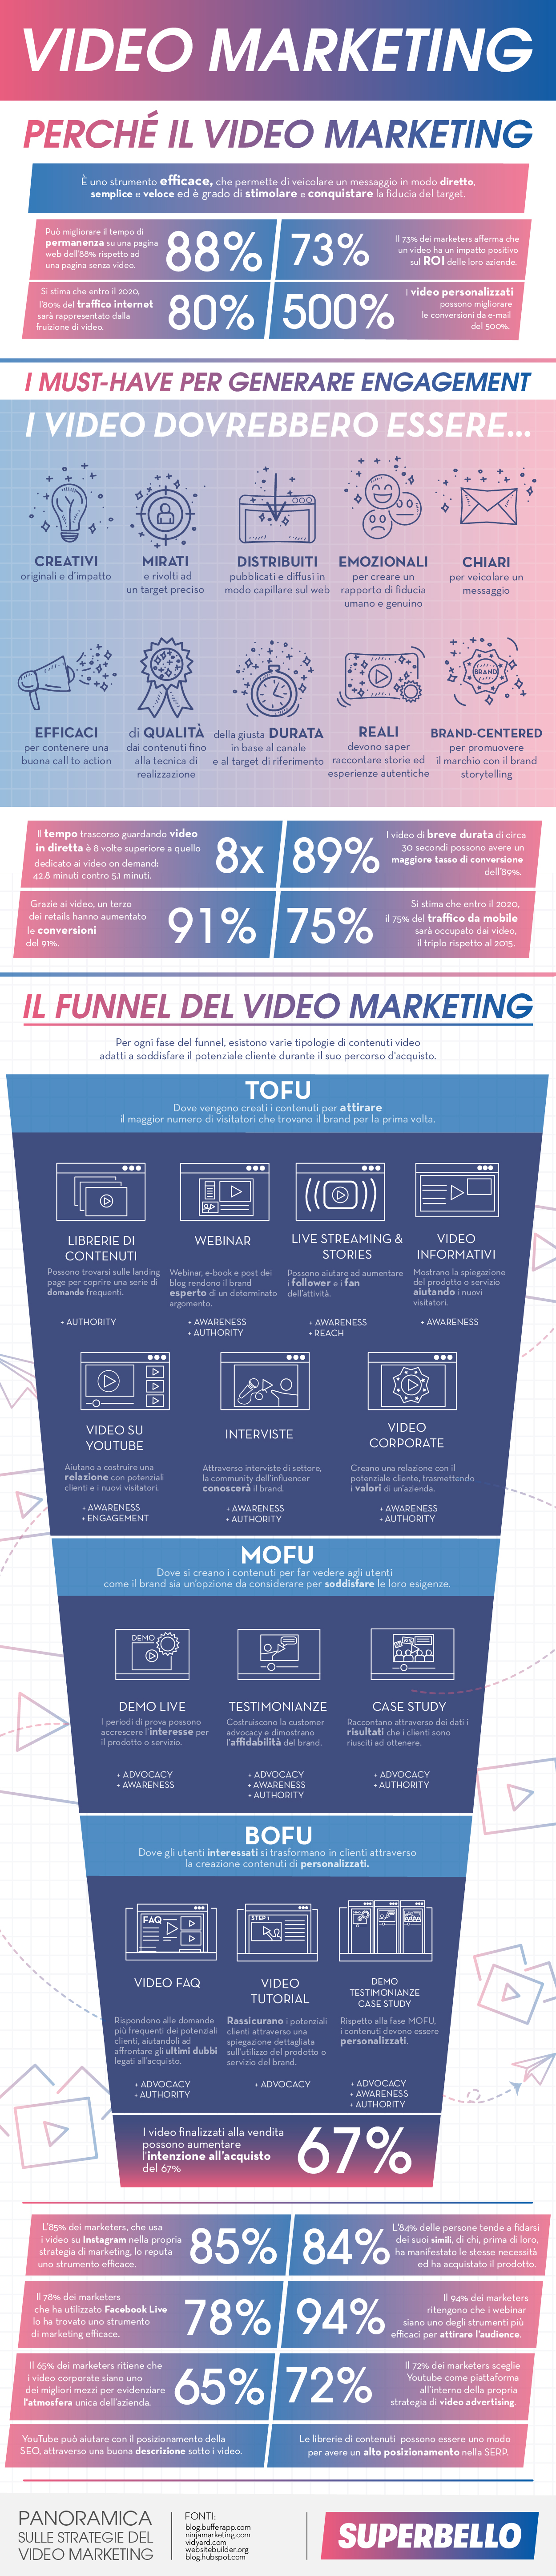 L'infografica spiega l'importanza del Video Marketing all'interno di una strategia di comunicazione integrata per generare engagement, farsi conoscere e conquistare la fiducia del pubblico, trasformandoli in clienti. Inoltre vengono differenziate le varie tipologie di contenuti video applicati alle fasi dell'Inbound Marketing: TOFU, MOFU, BOFU